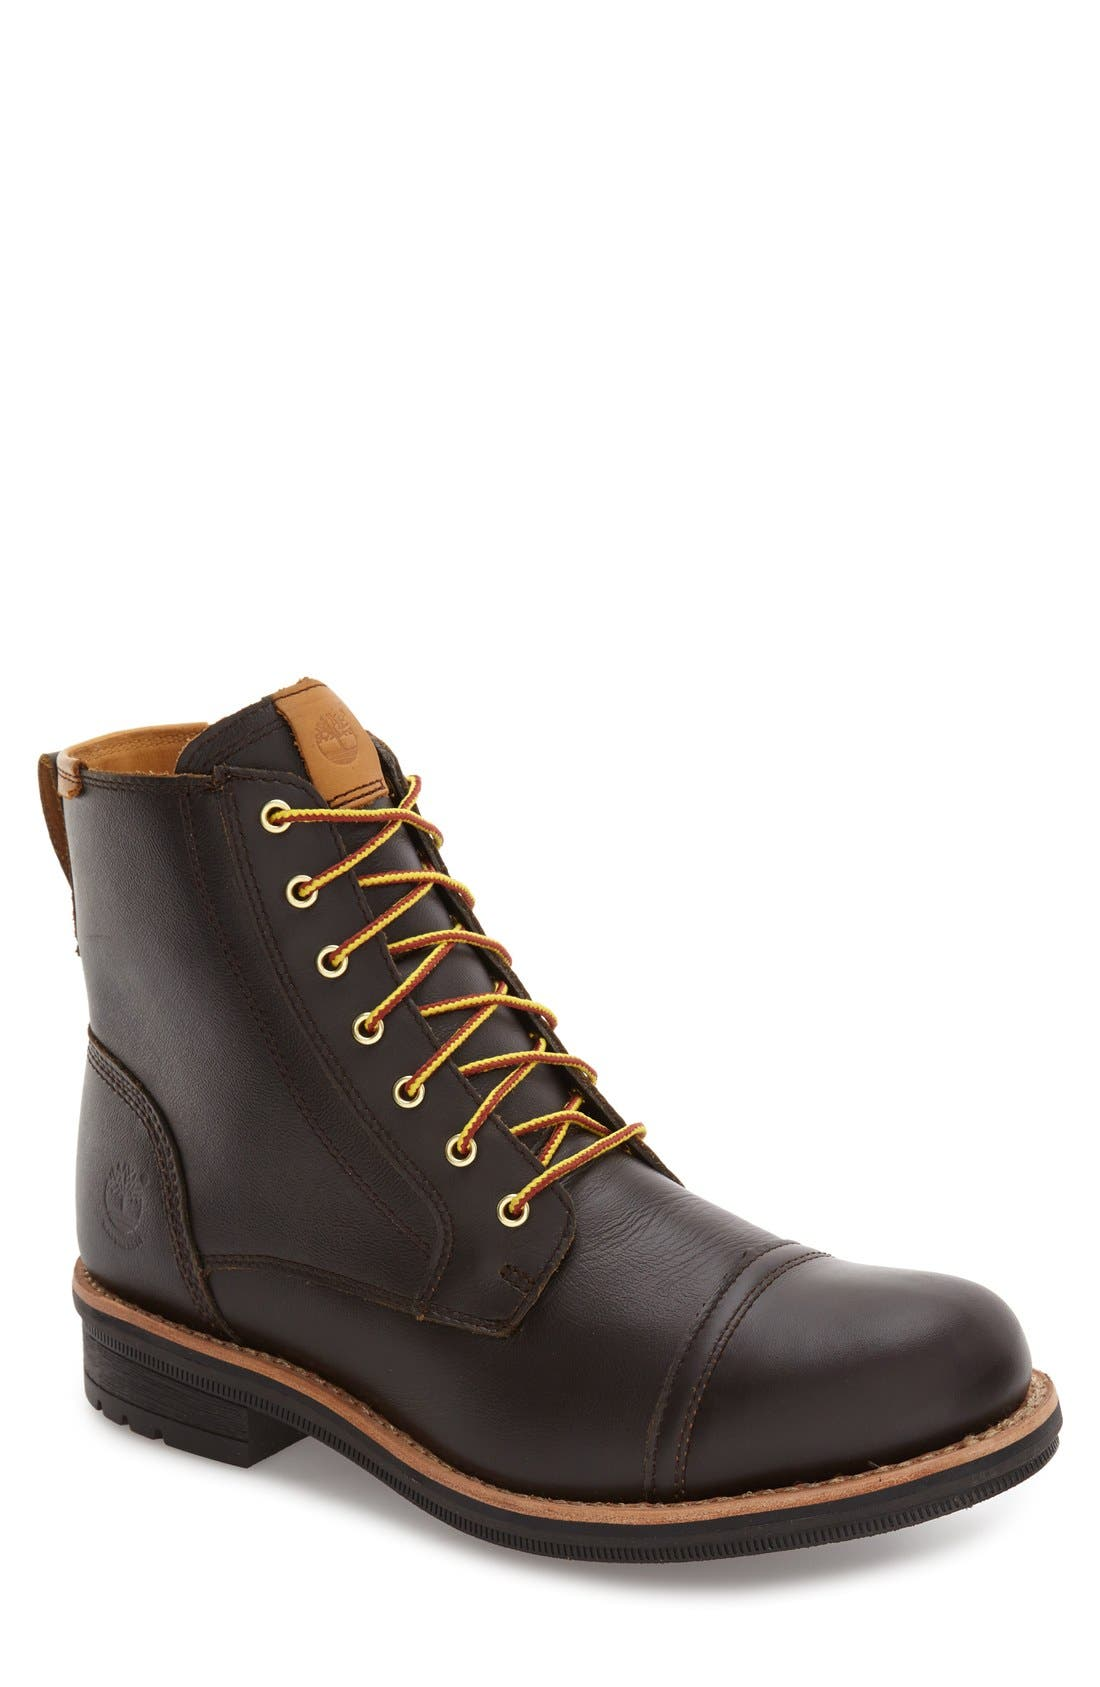 TIMBERLAND,                             'Willoughby' Cap Toe Boot,                             Main thumbnail 1, color,                             200